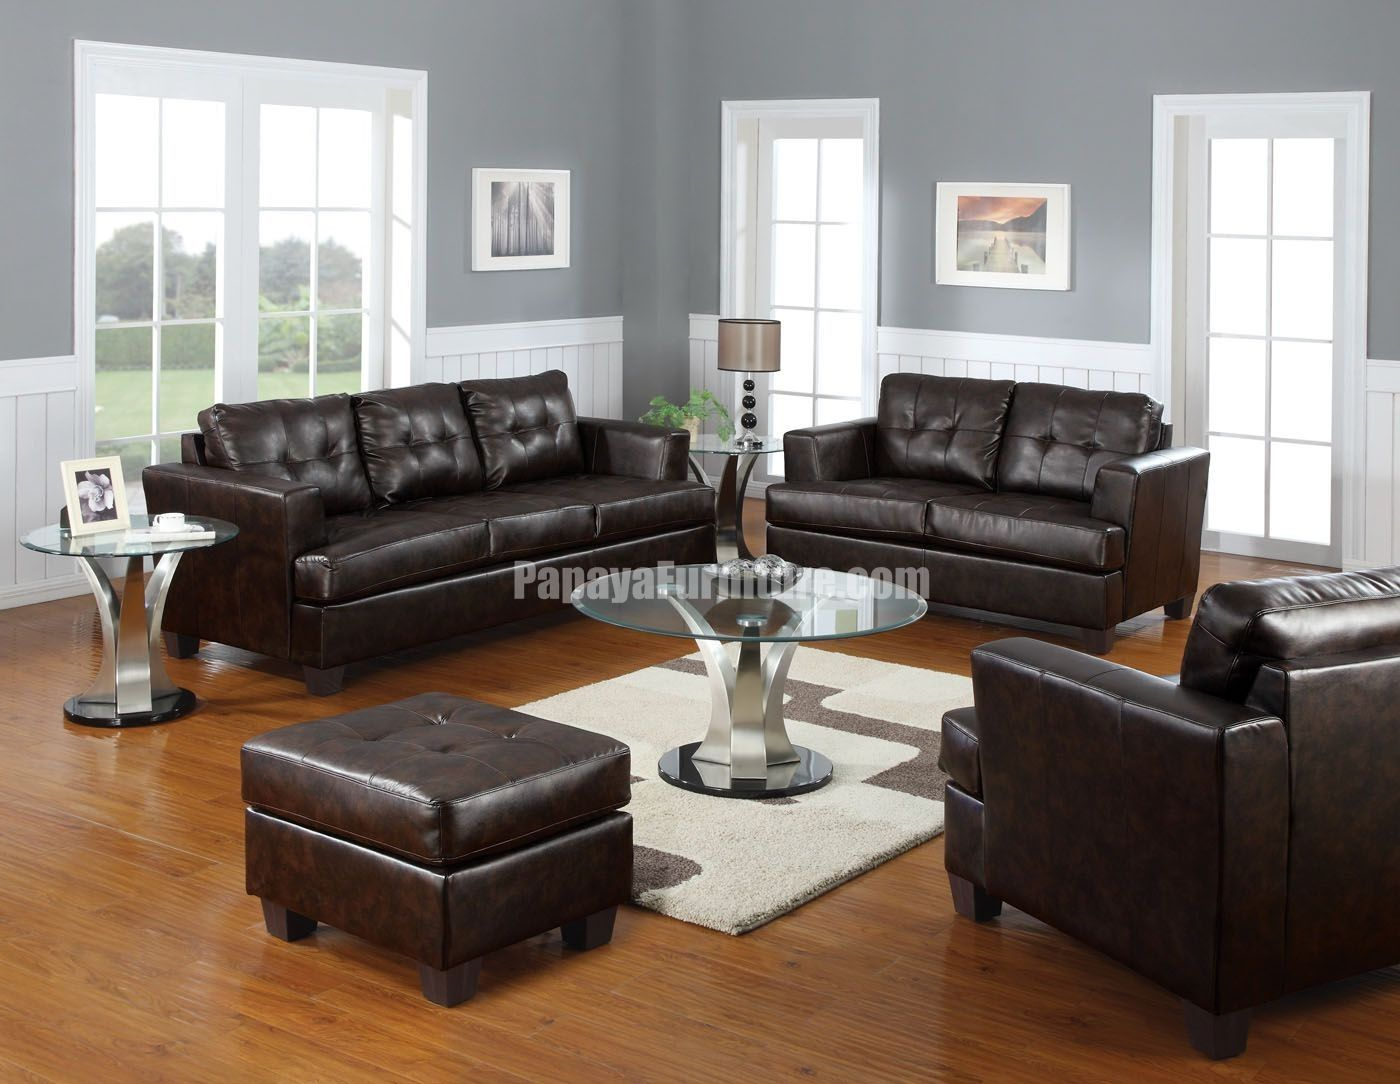 Good Add Elegance And Class To Your Living Room With This Contemporary Bonded Leather  Couch In A Classic Brown Color That Matches Any Decor. This Sofa Set Is ... Great Pictures